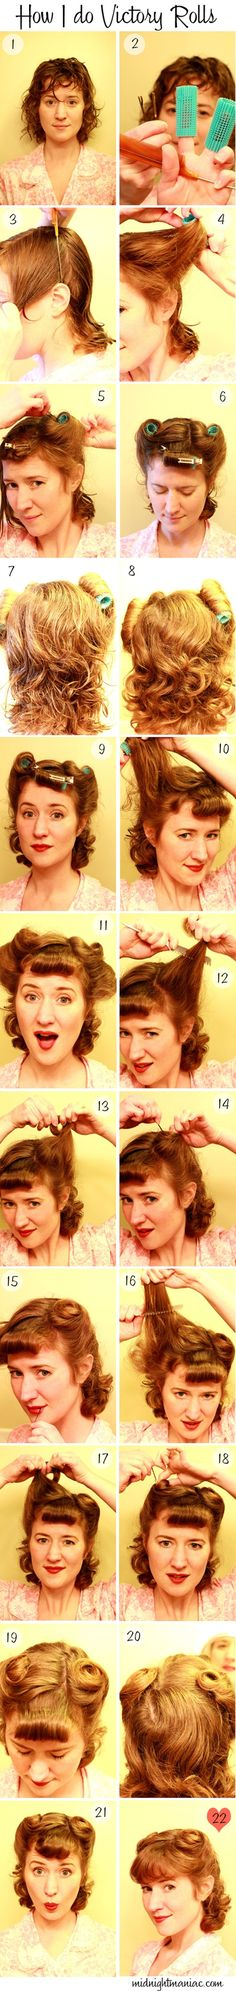 """How to do a """"victory rolls"""" 1940's hairstyle. So THAT'S how my grandma did it.                                                                                                                                                                                 More"""